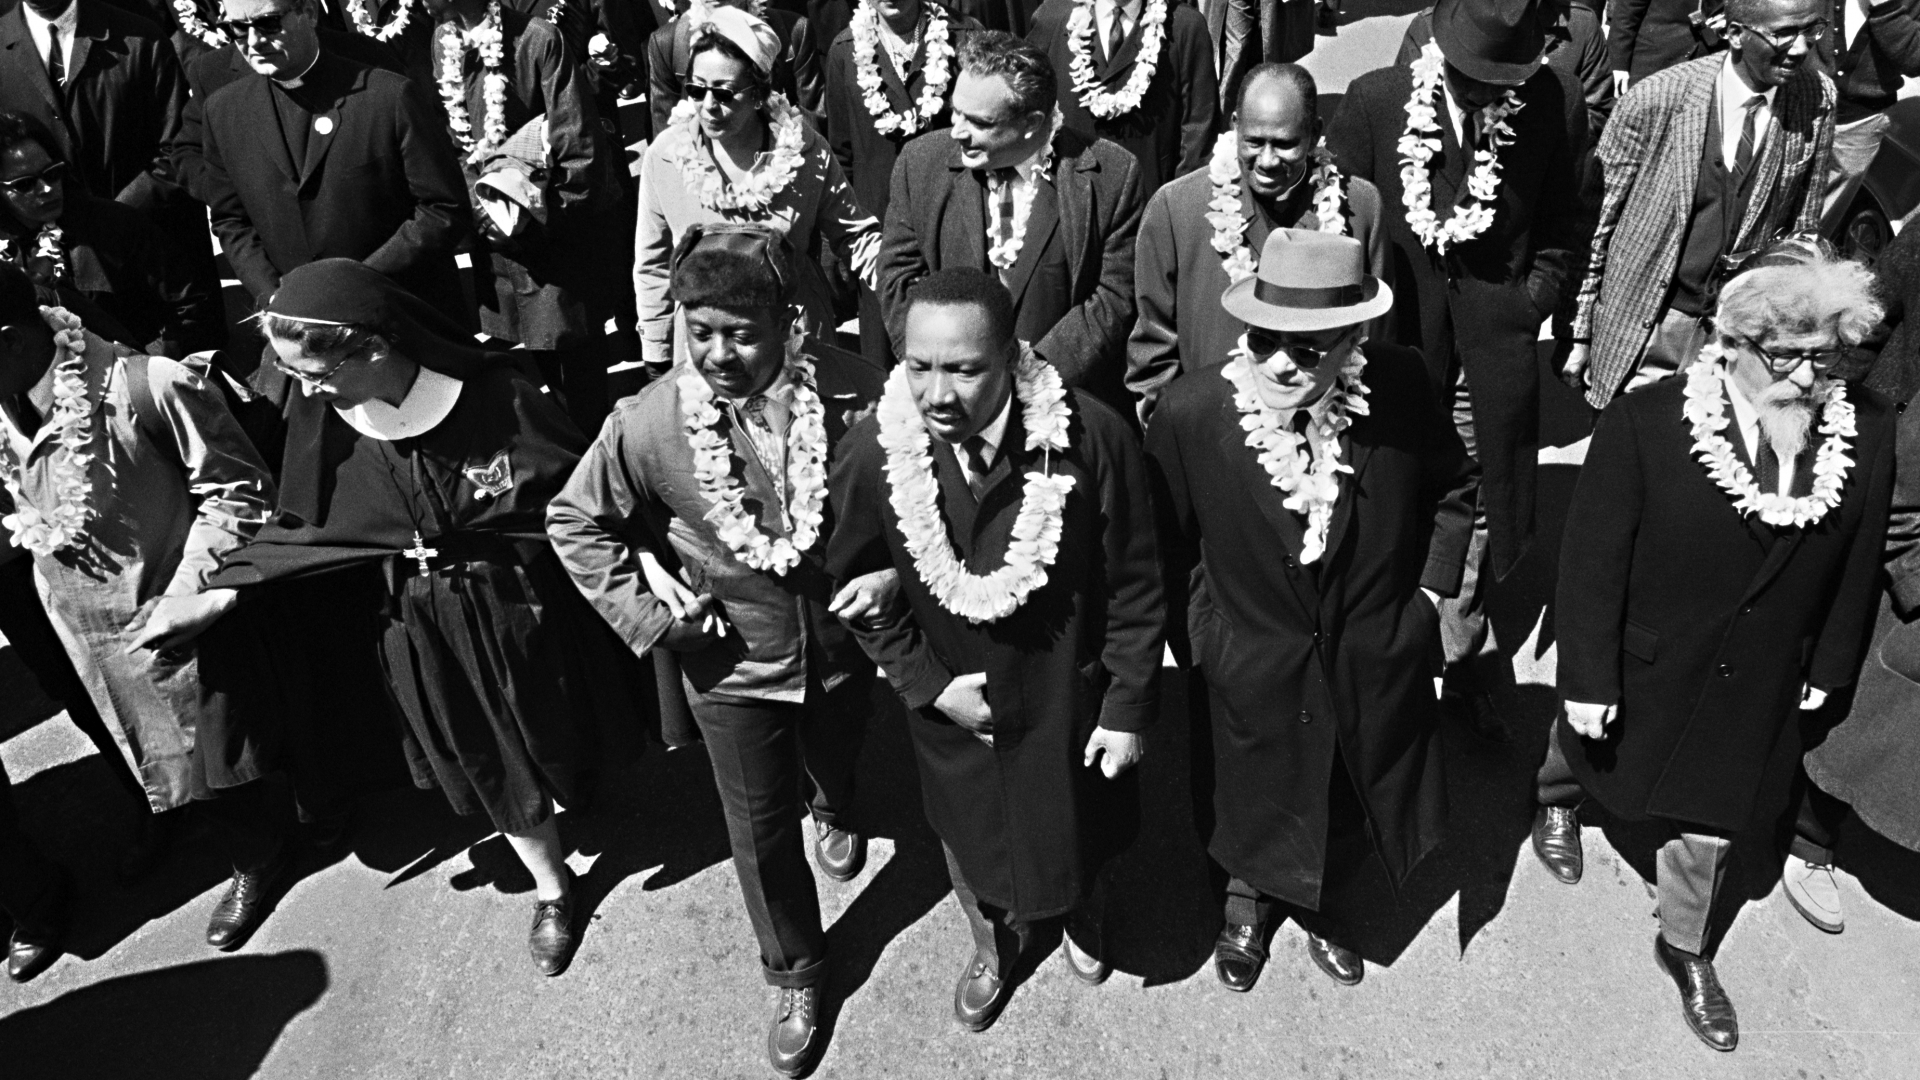 Dr. Martin Luther King, Jr.leading marchers as they begin the Selma to Montgomery civil rights march from Brown's Chapel Church in Selma, Alabama. (Credit: Bettmann Archive/Getty Images)